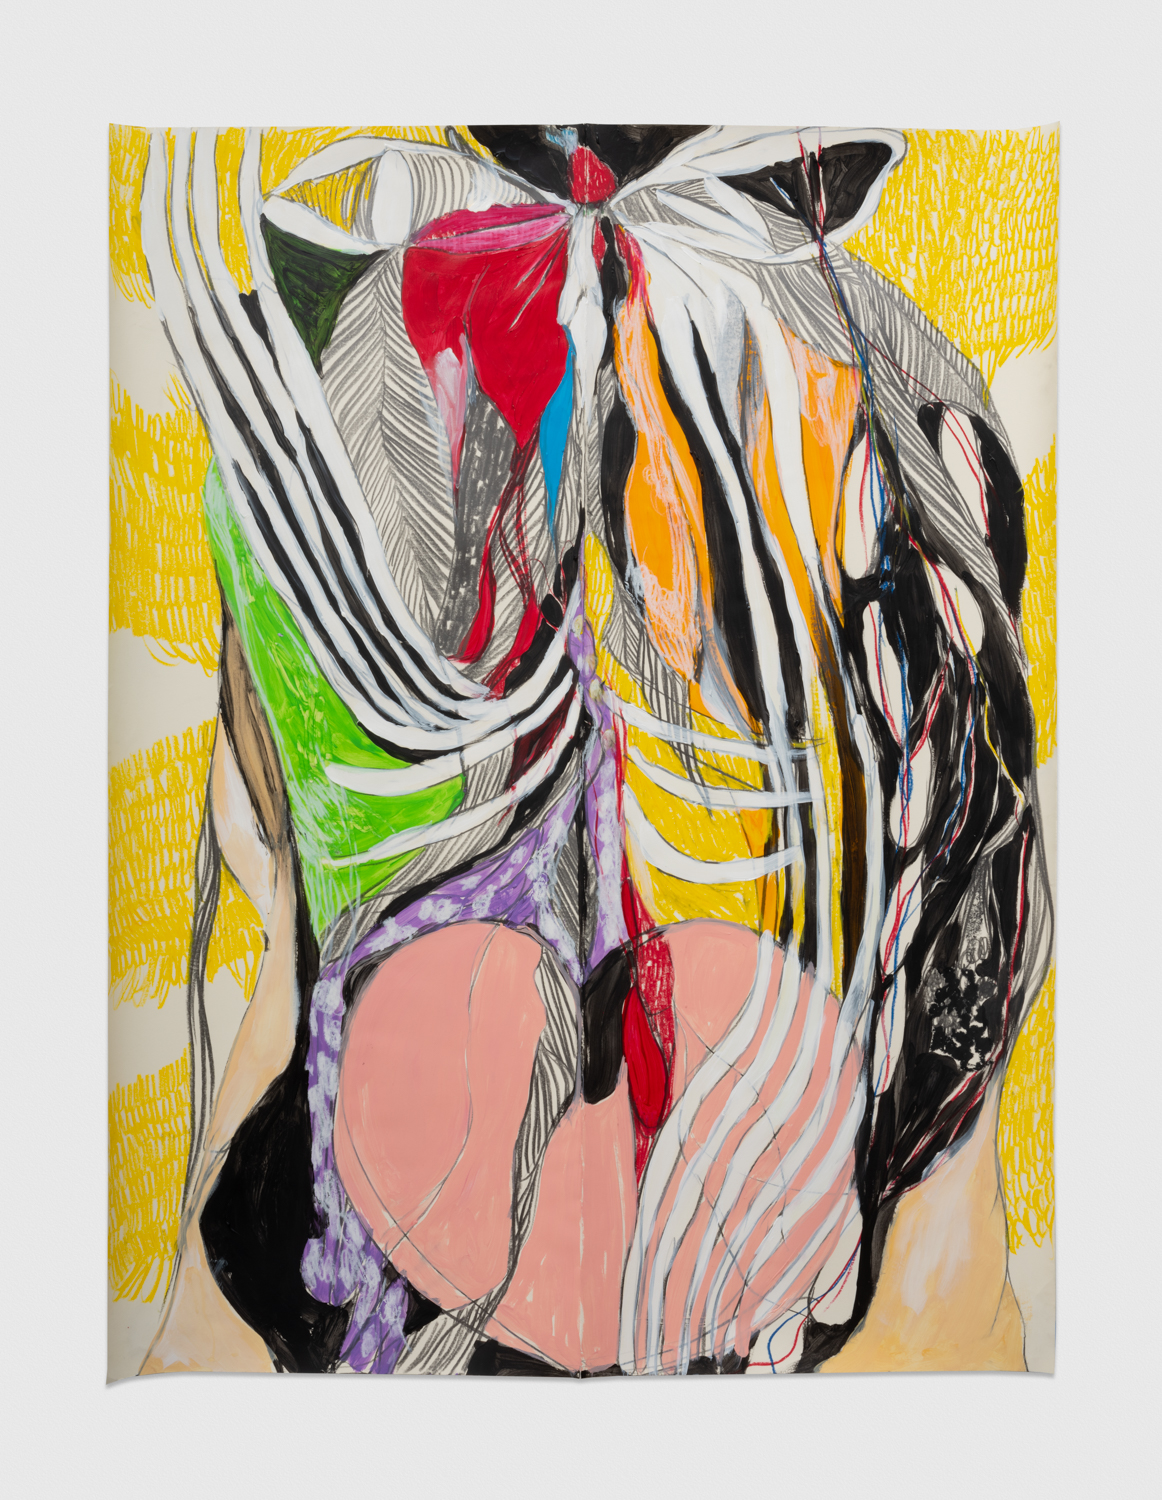 NaotakaHiro Untitled (Rear View), 2018 Acrylic, graphite and grease pencil on paper 42h x 32w in NaoH016